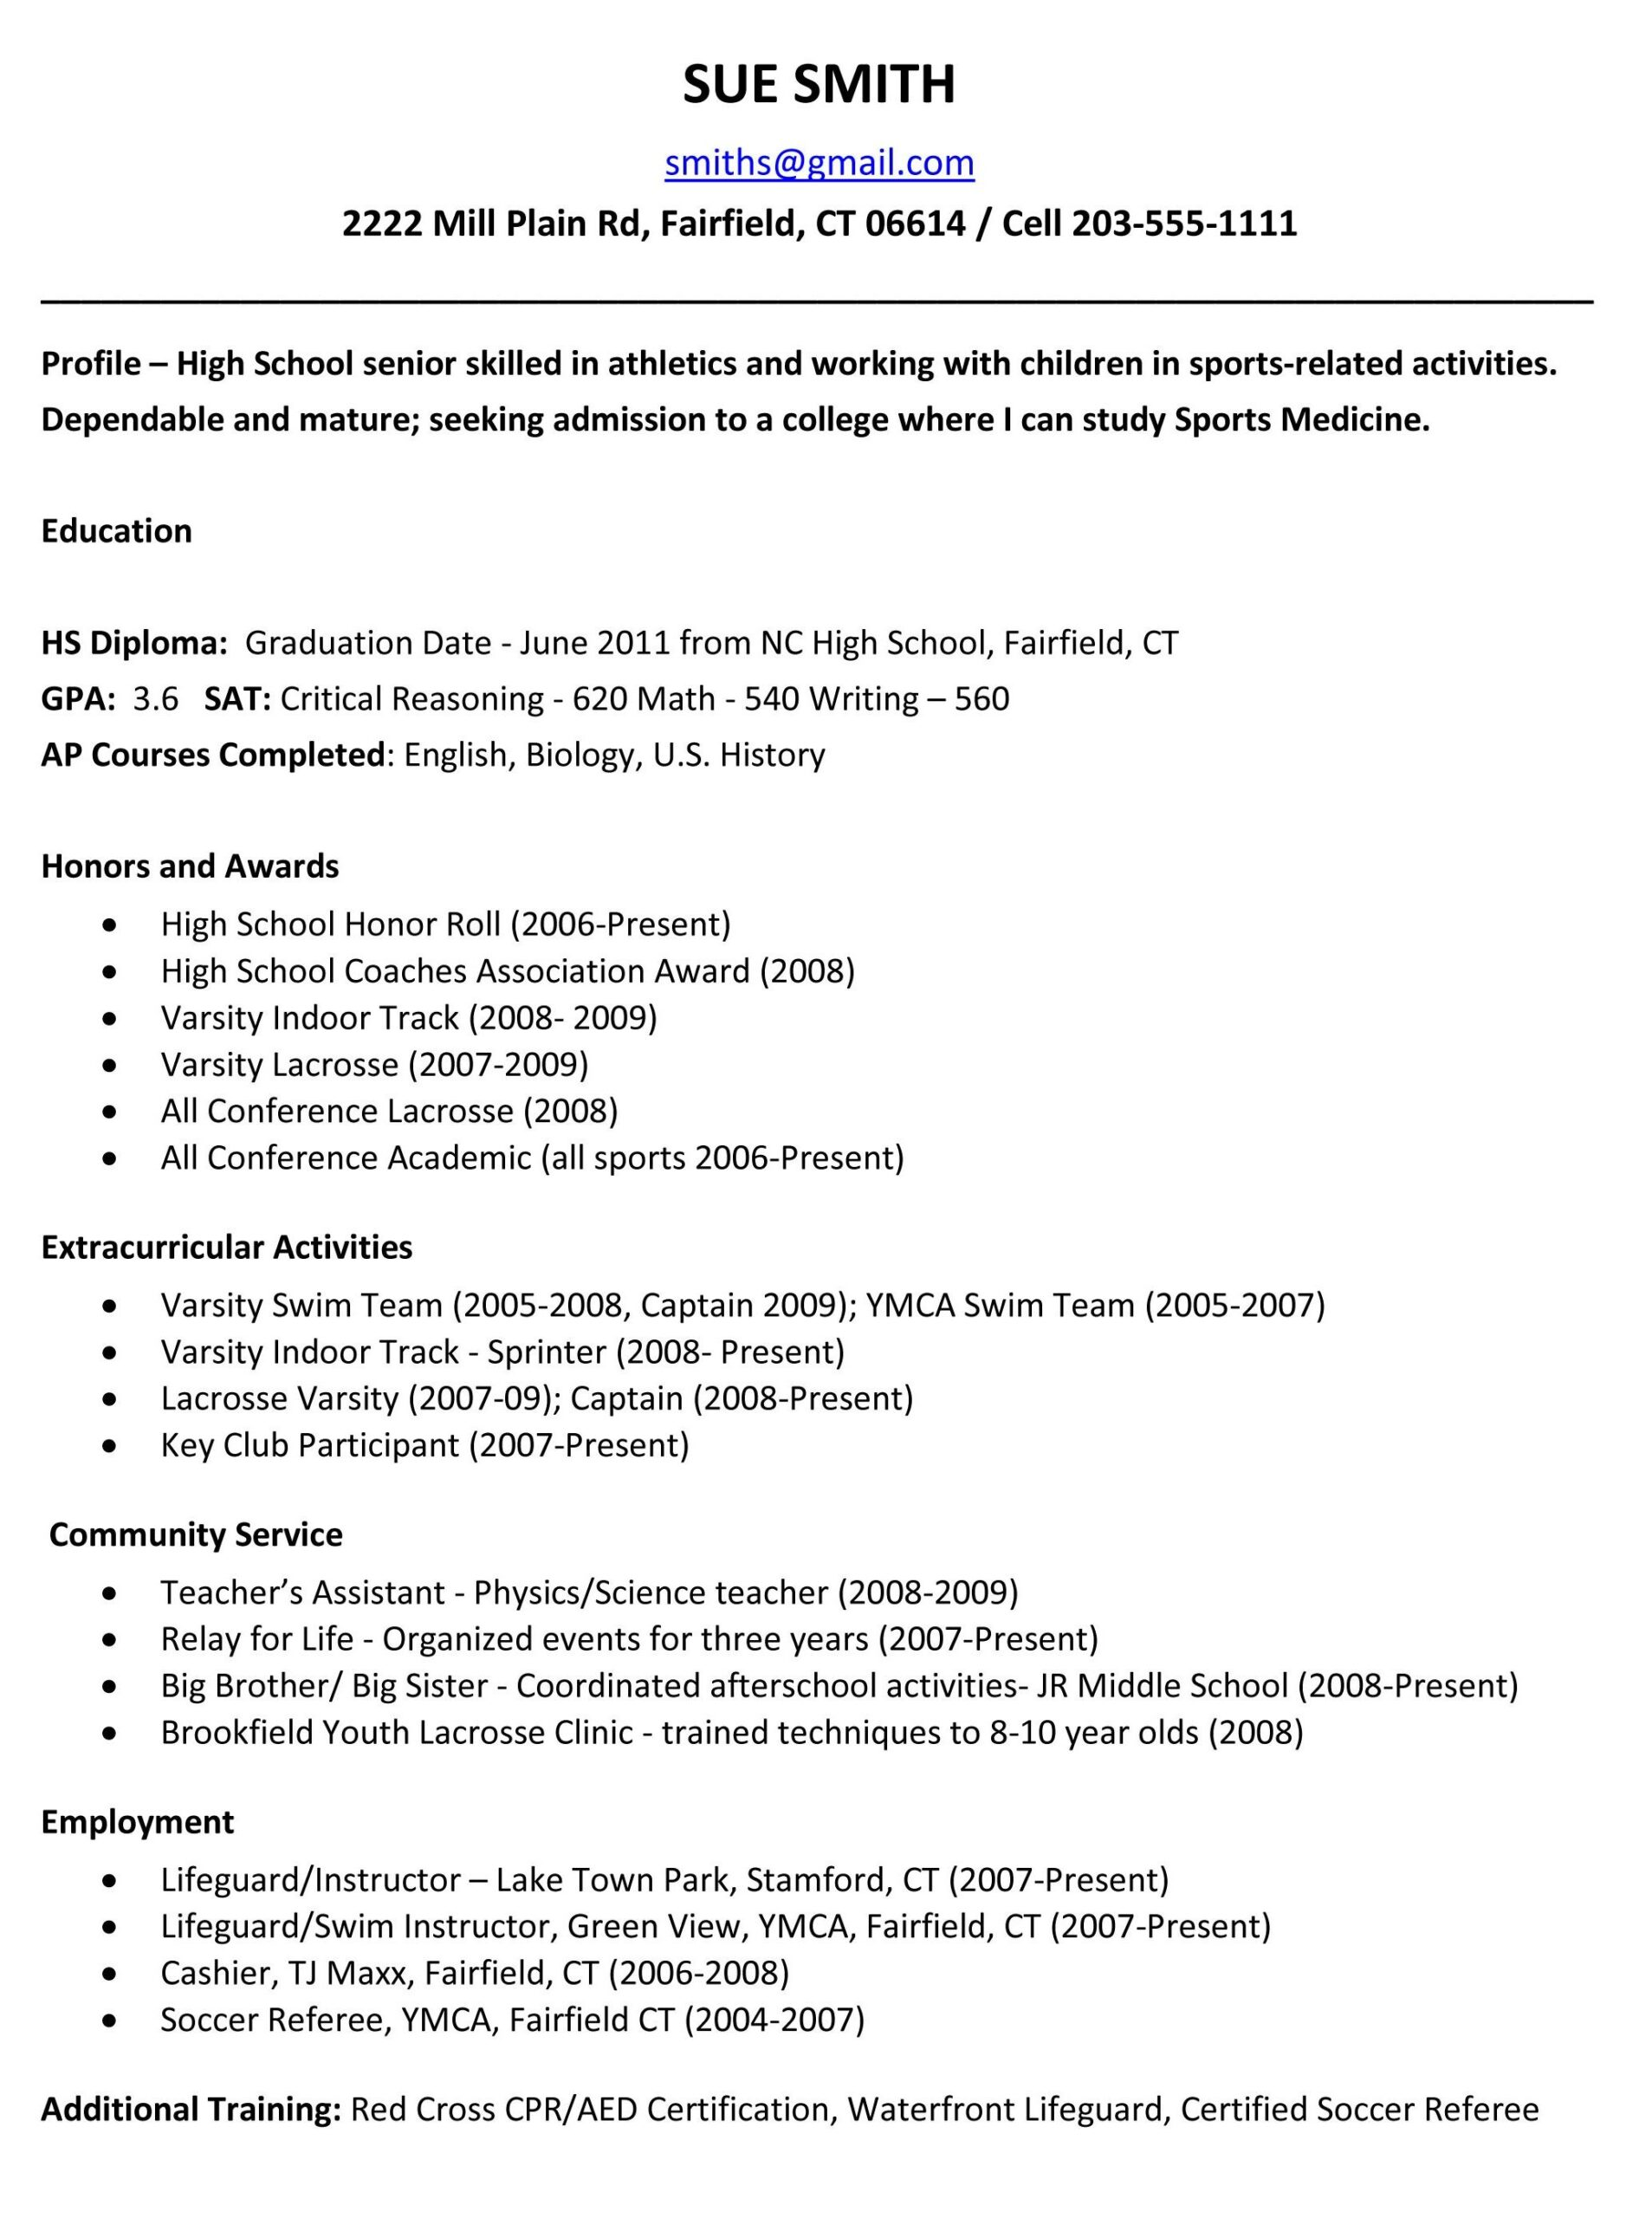 sample resumes high school resume template college application academic for admission Resume Academic Resume For College Admission